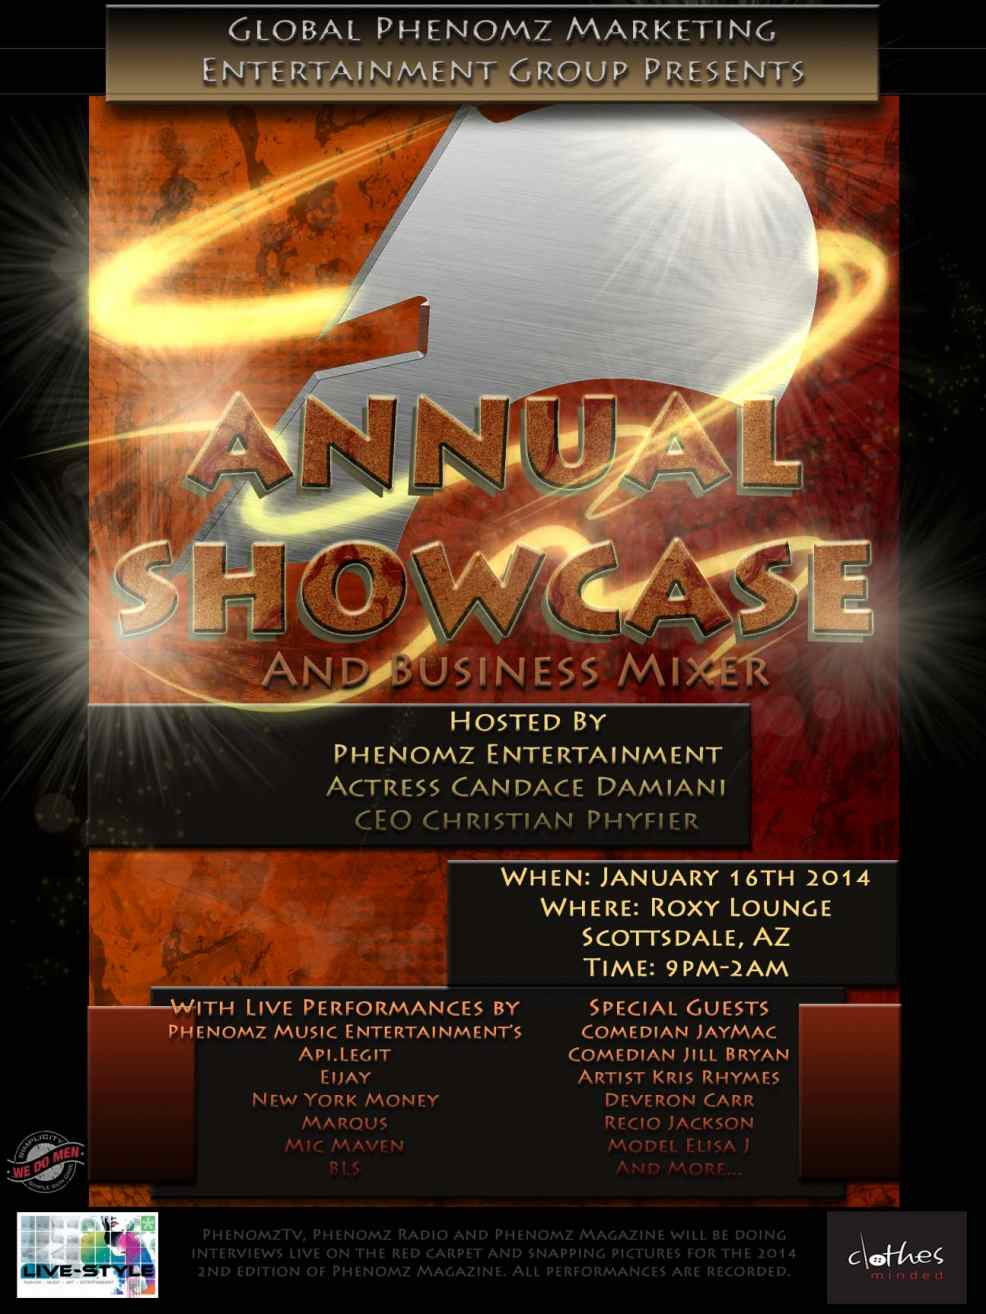 2014 Global Phenomz Annual Entertainment Showcase & Business Mixer